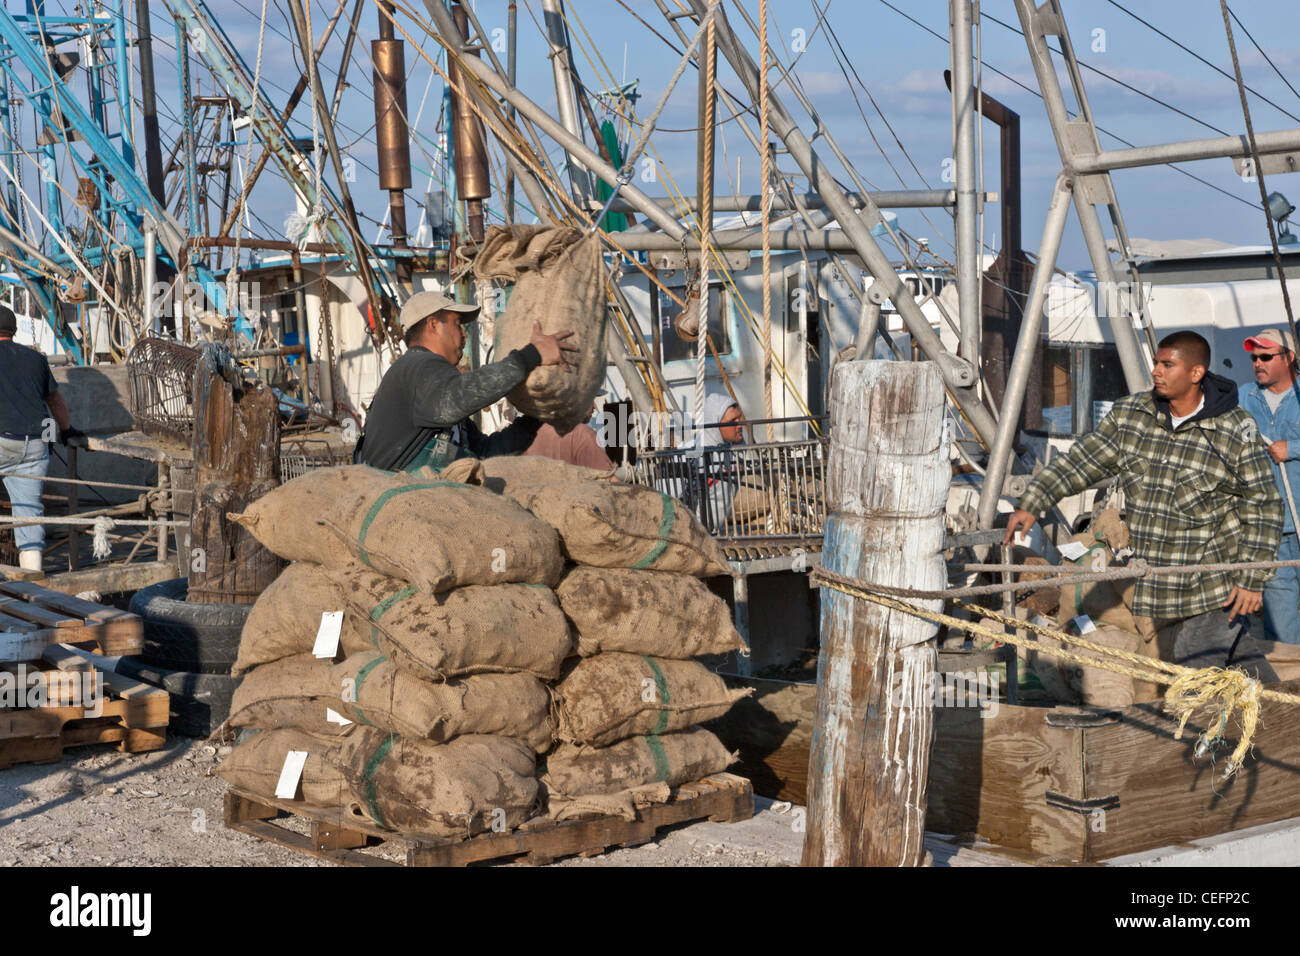 Fishermen unloading 'sacked' harvested oysters from boat. - Stock Image